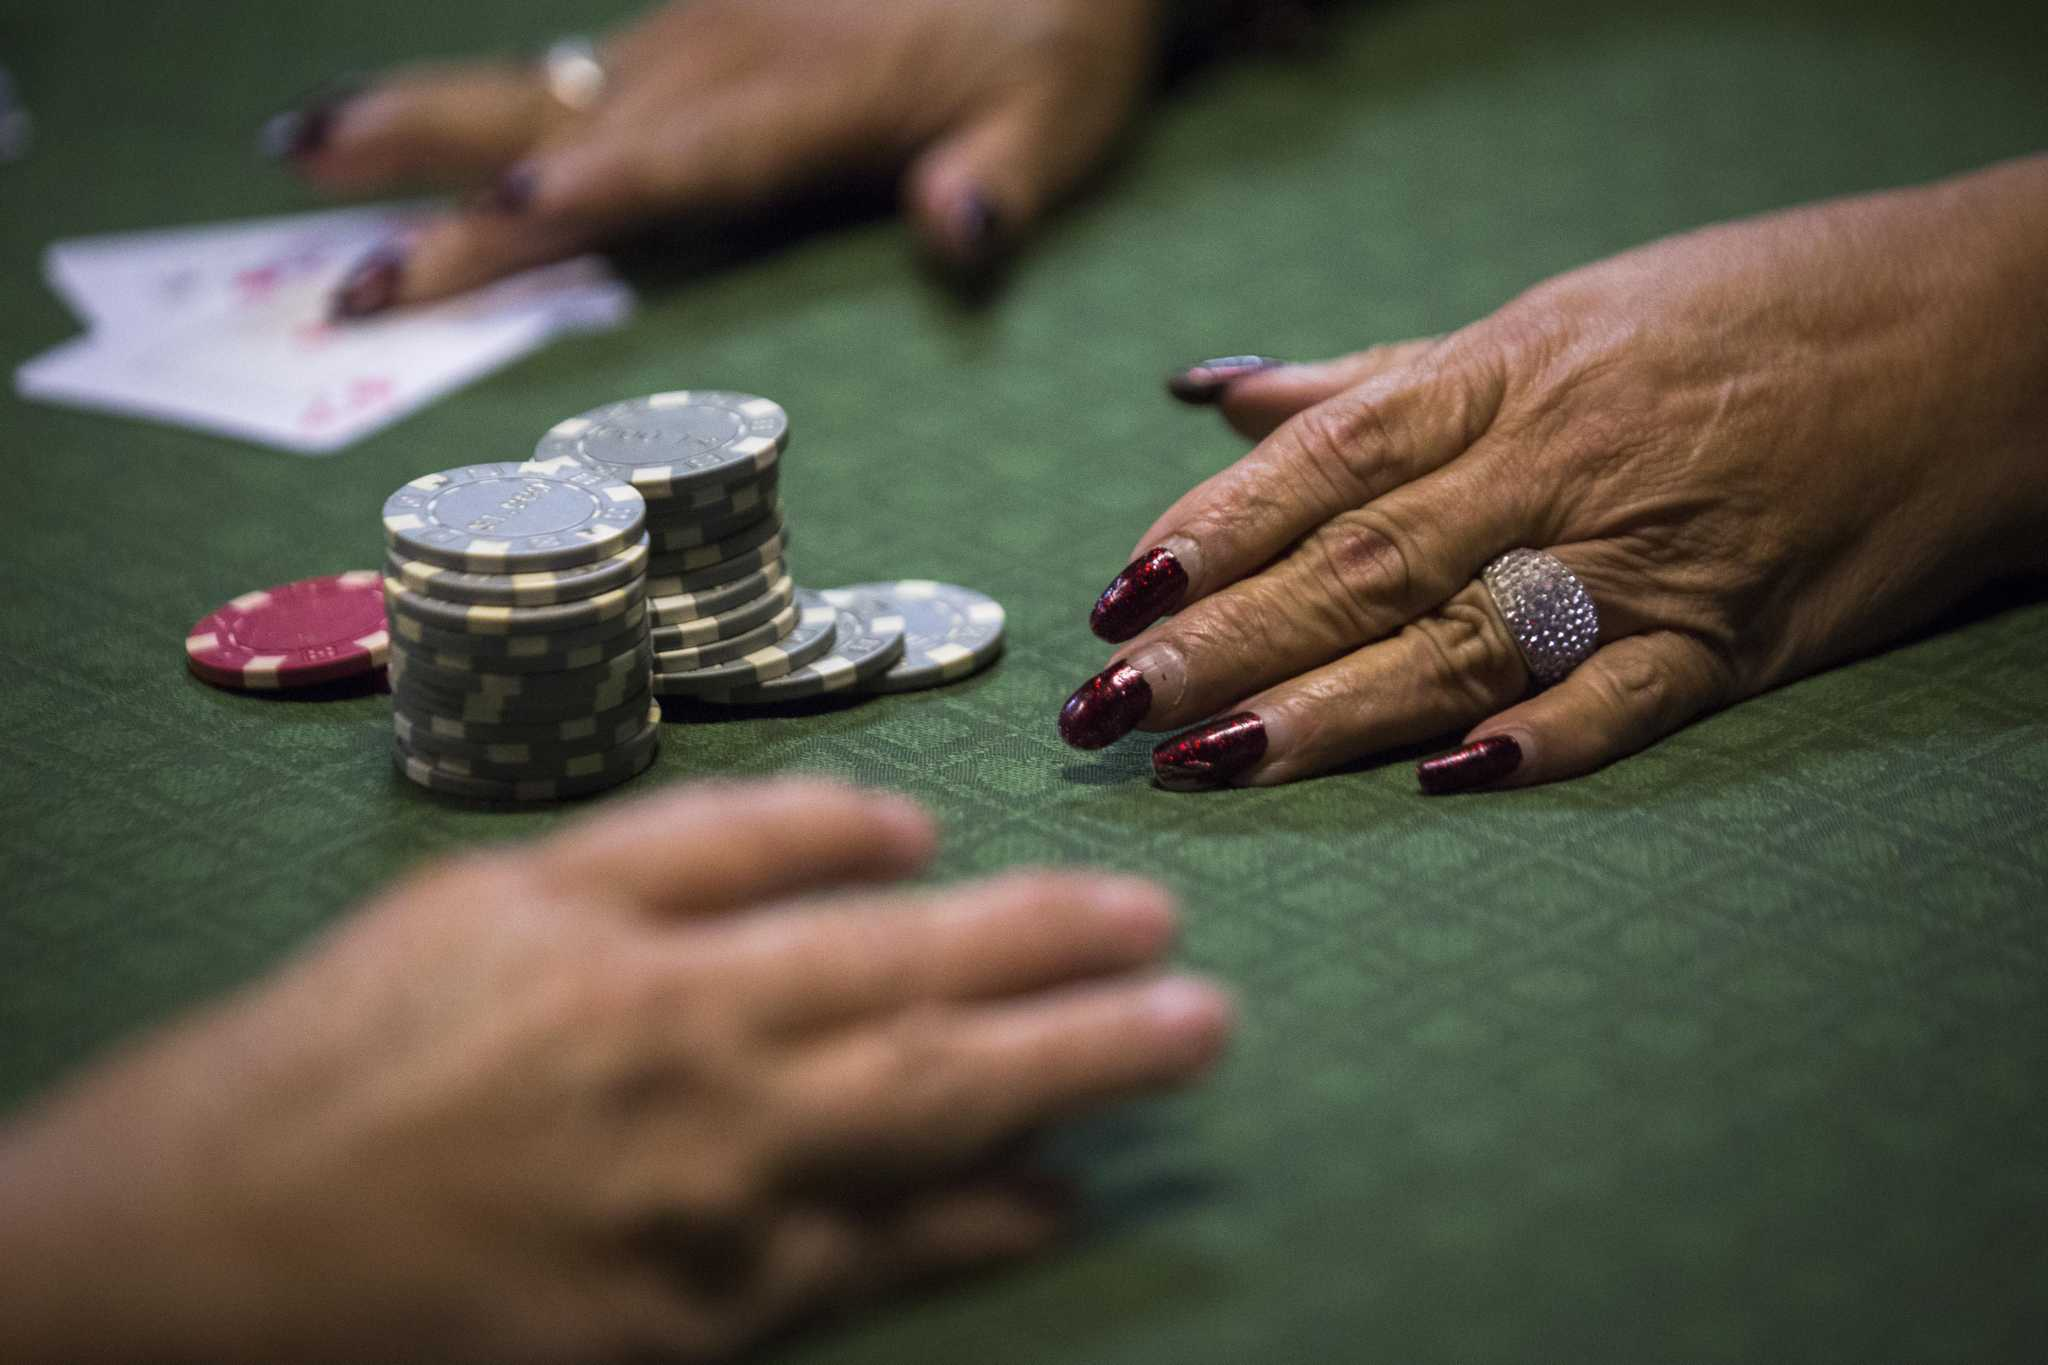 Are poker clubs legal in Texas? The answer is unclear.